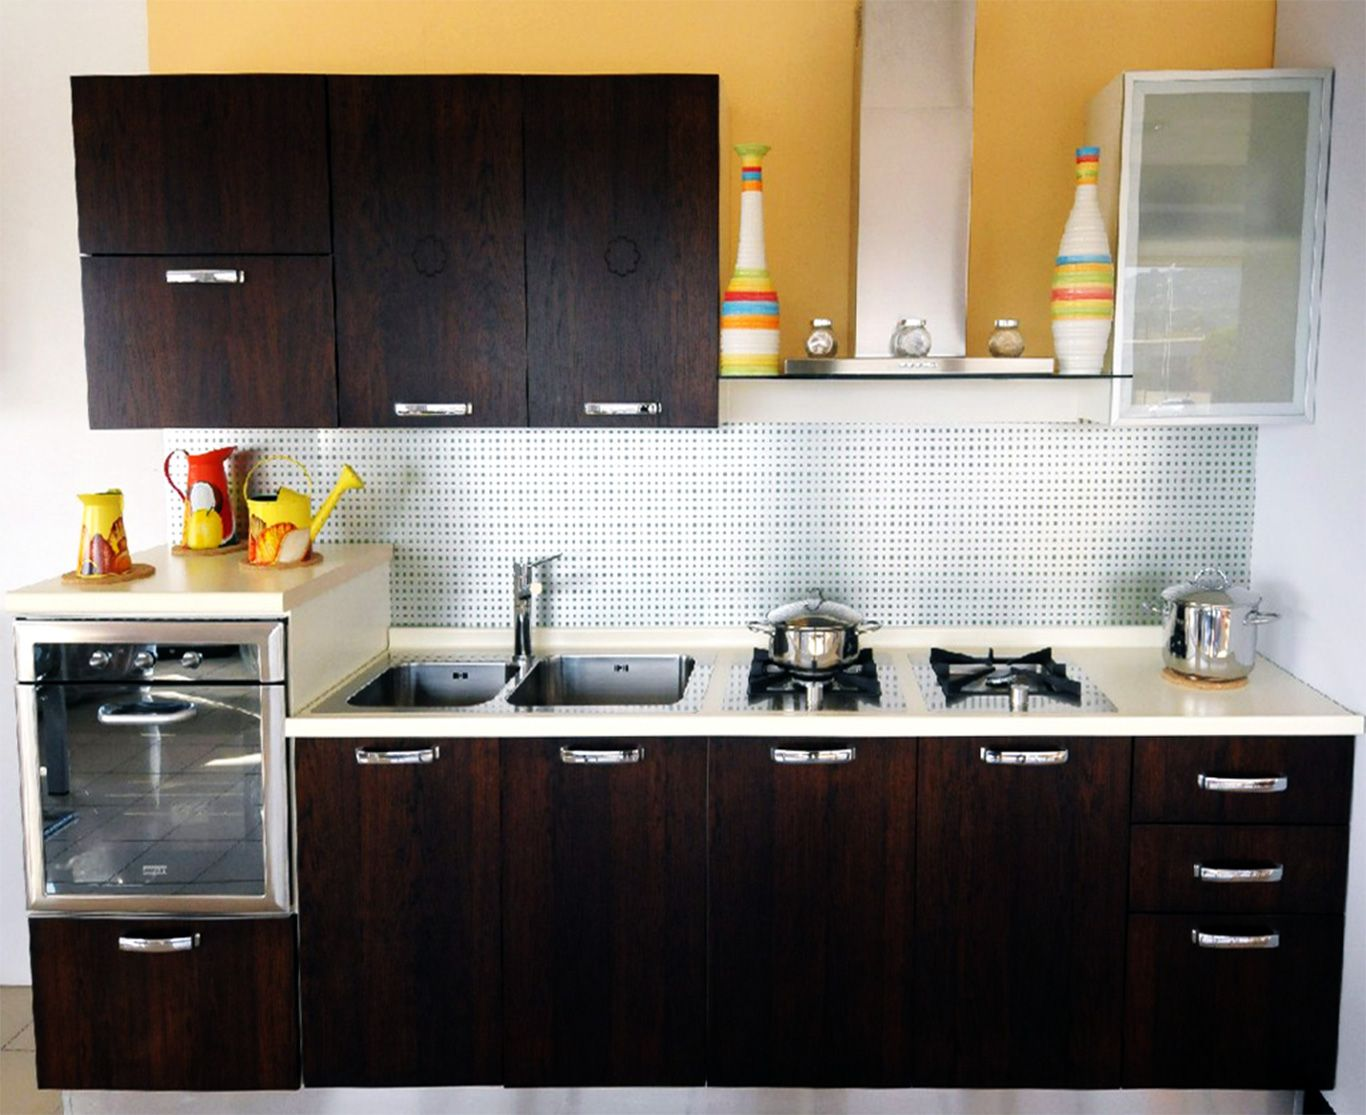 Pune kitchens is the modular kitchen shutters supplier for Simple modern kitchen cabinets